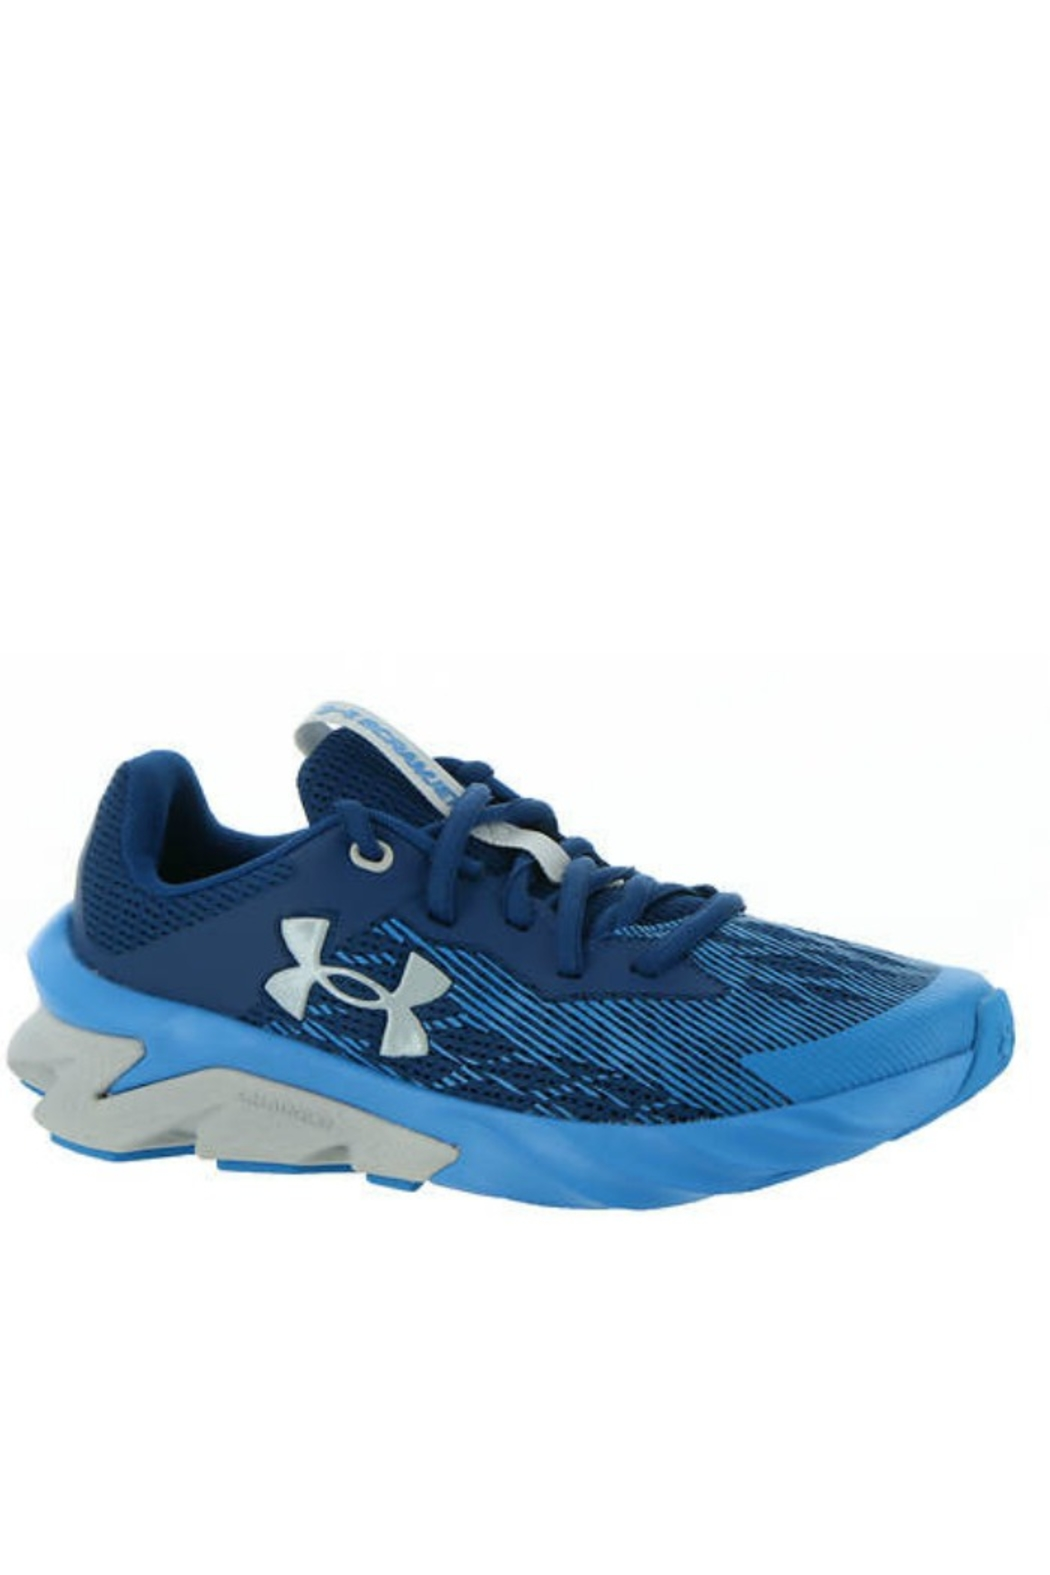 Under Armour BGS Charged Scramjet 3 - Main Image